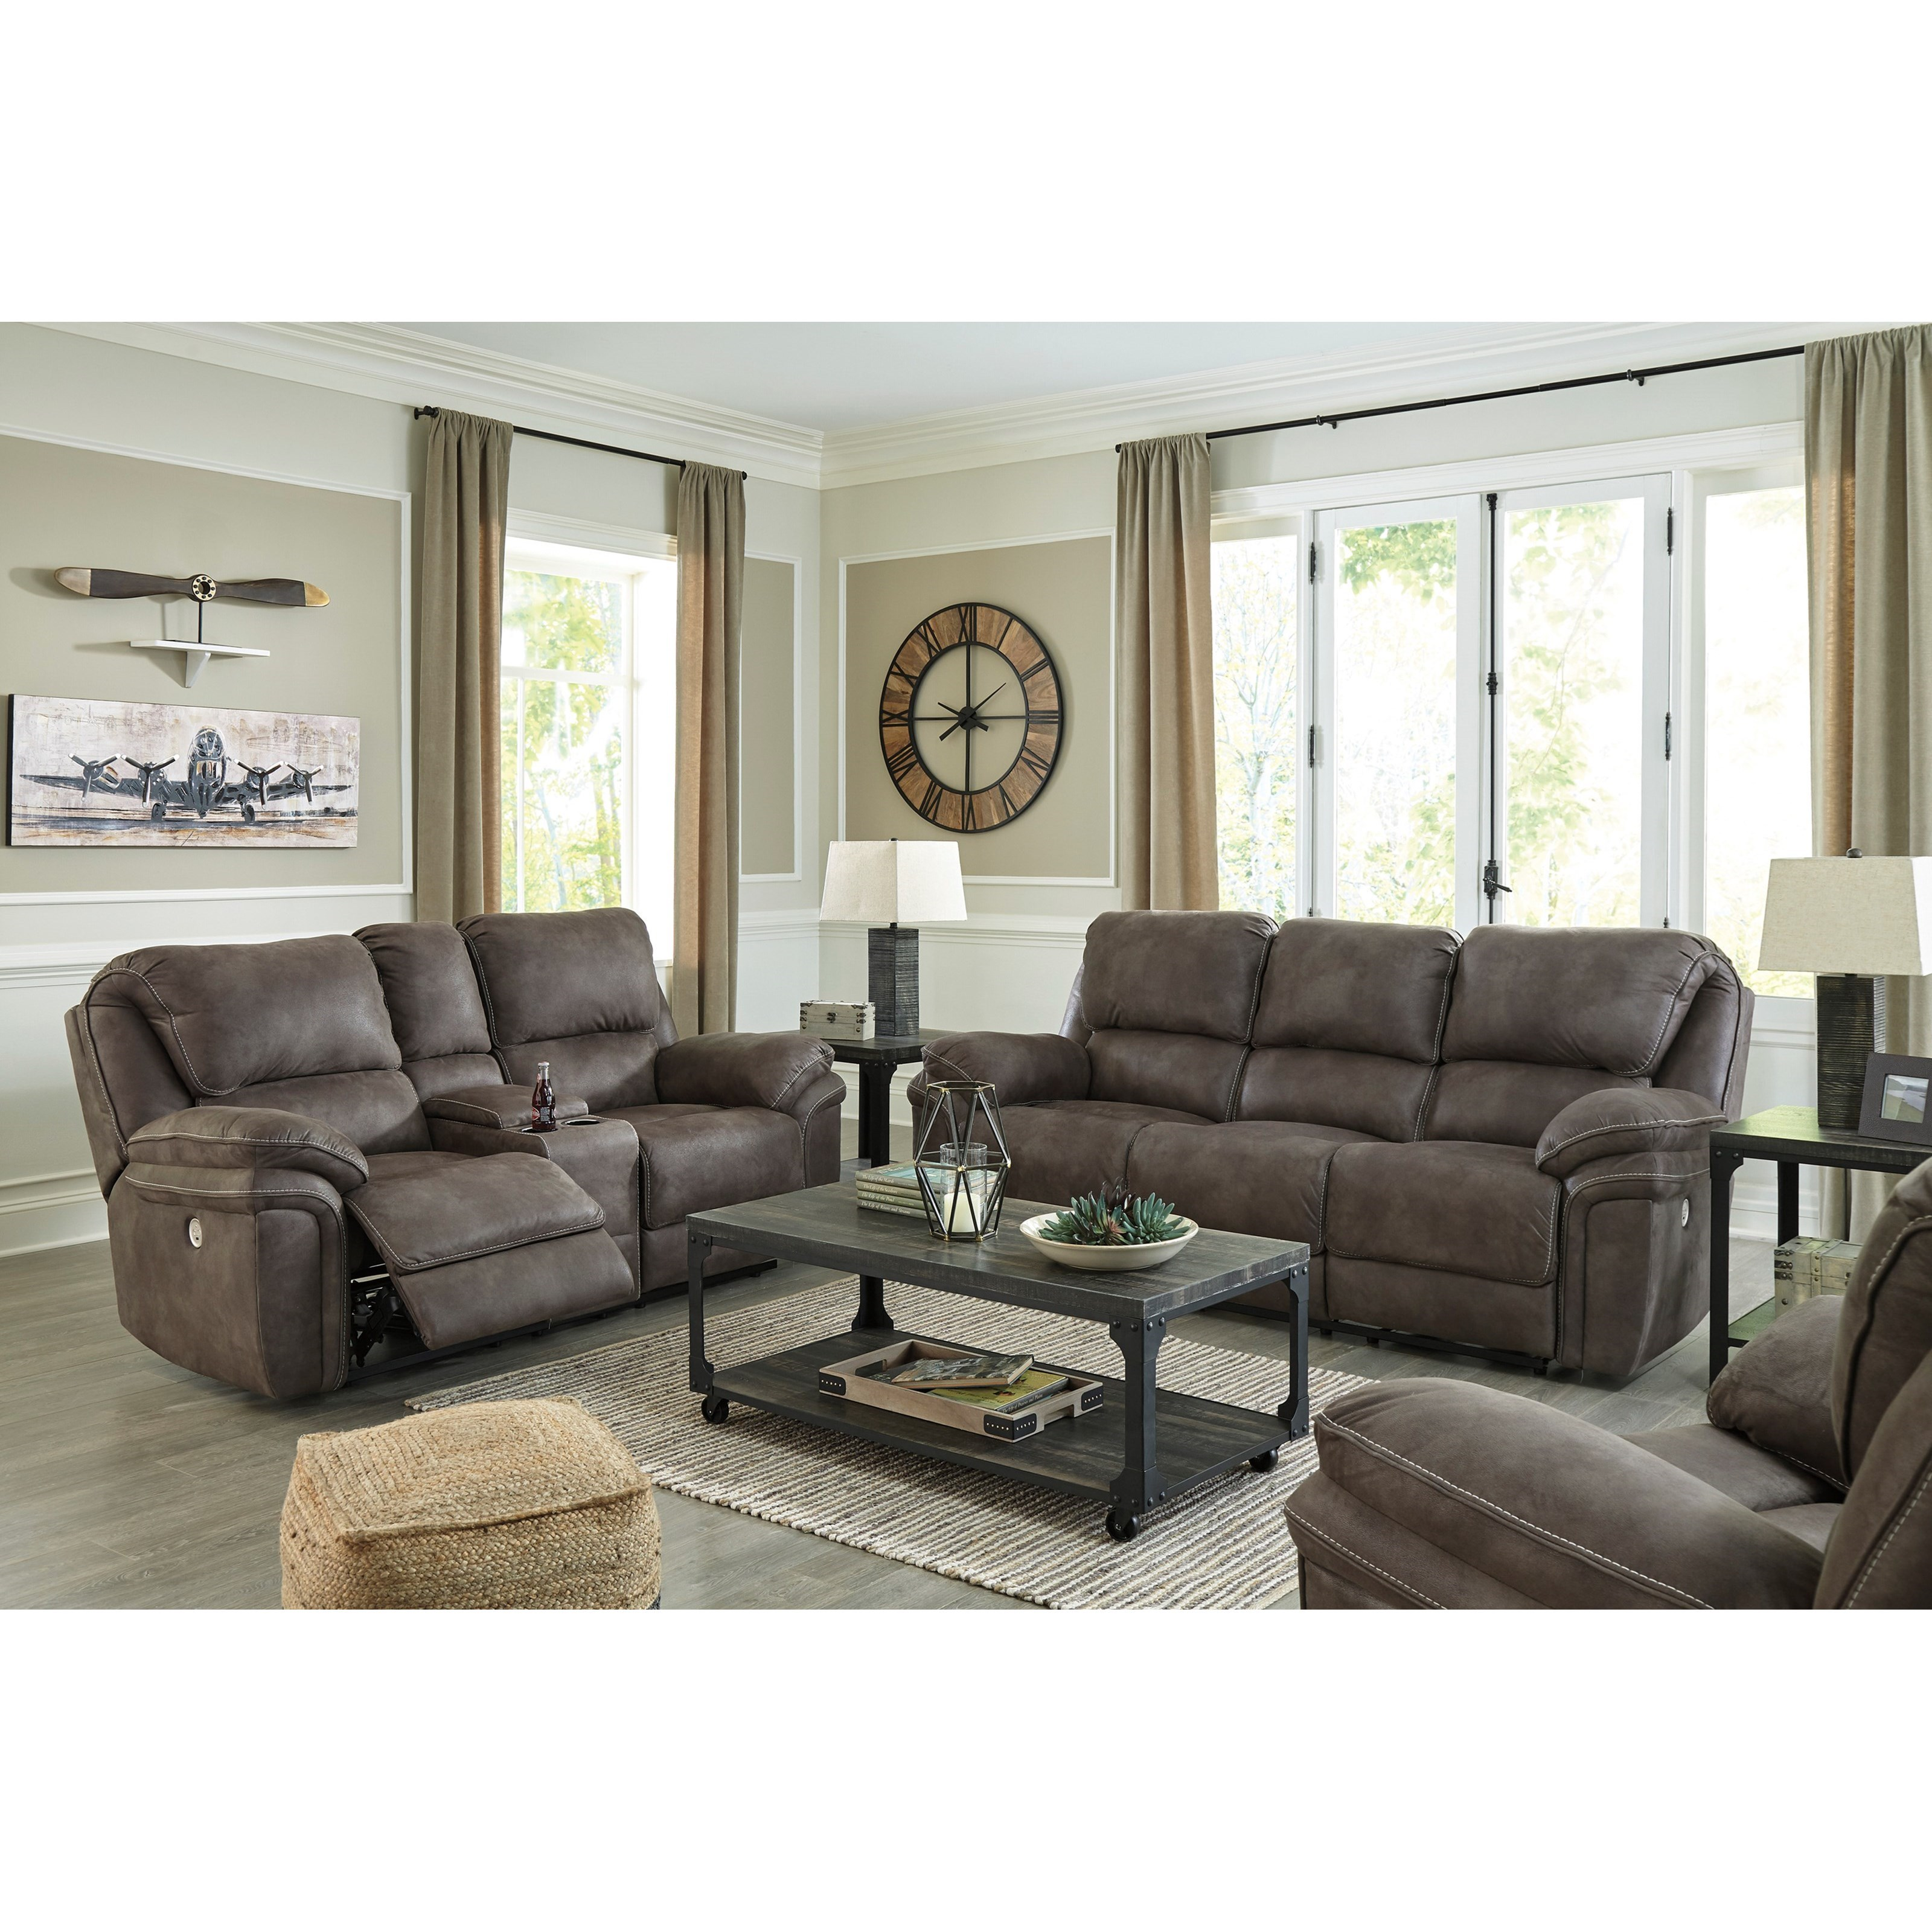 Trementon Power Reclining Living Room Group by Benchcraft at Zak's Warehouse Clearance Center